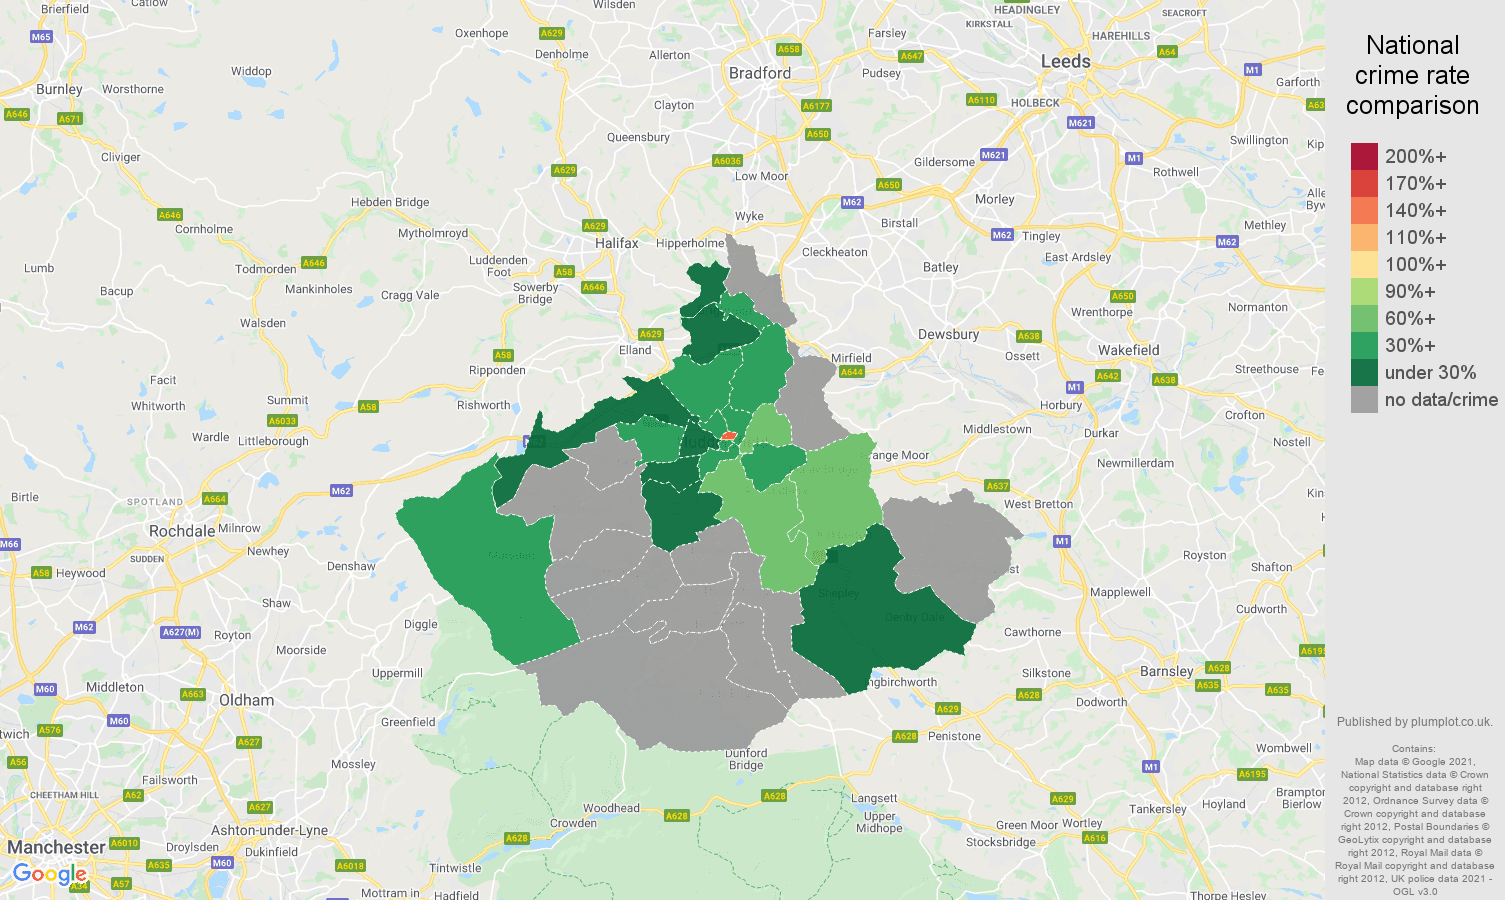 Huddersfield bicycle theft crime rate comparison map